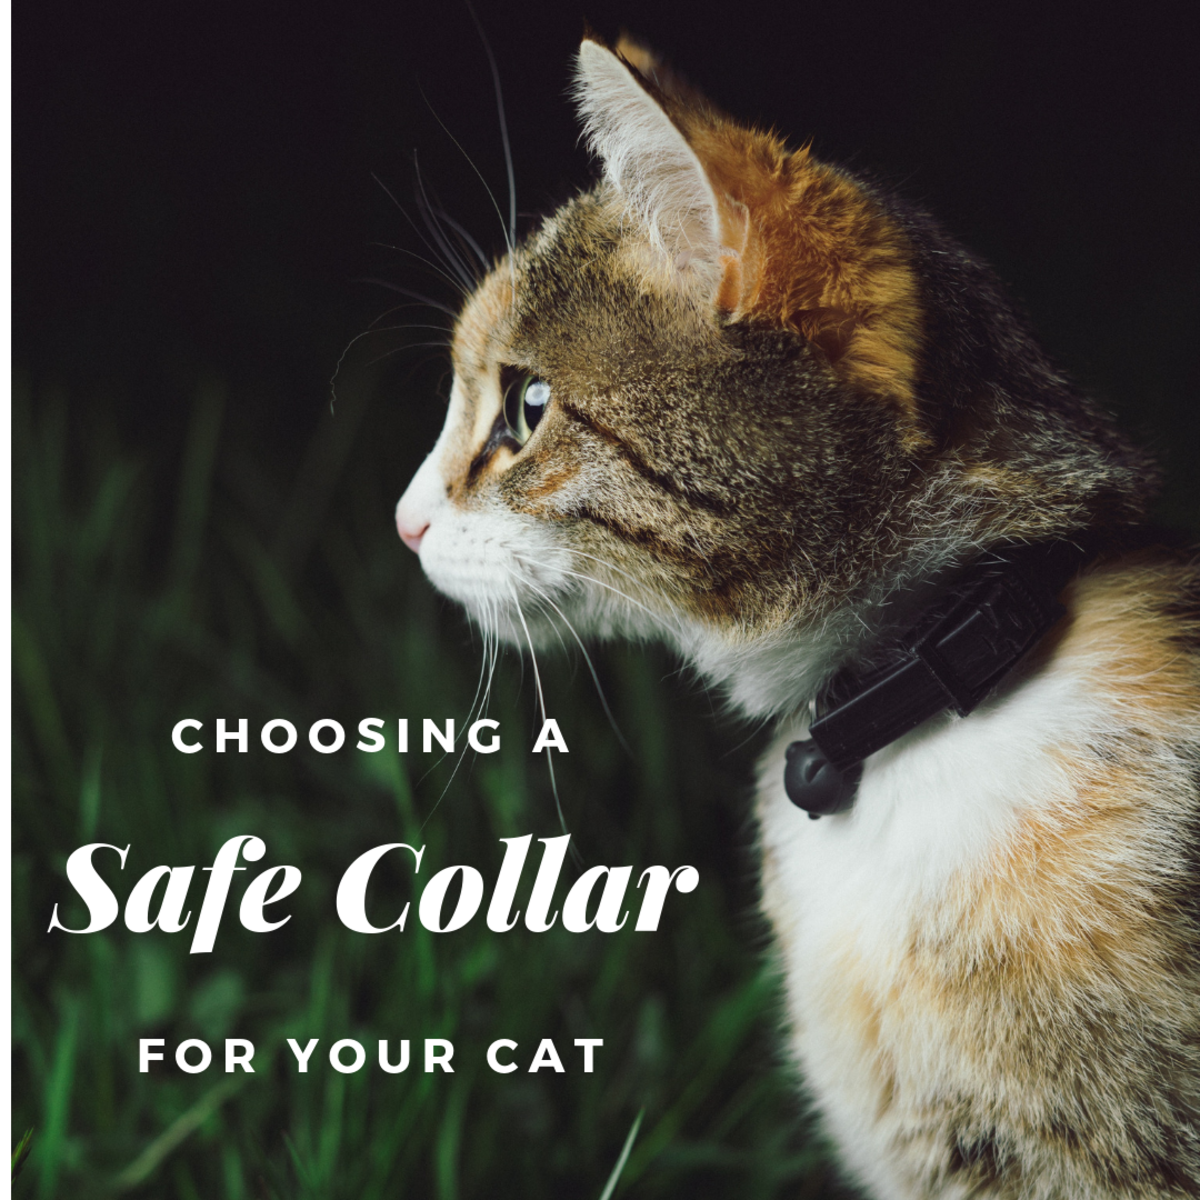 Best Safe and Cute Cat Collars for Your Cat